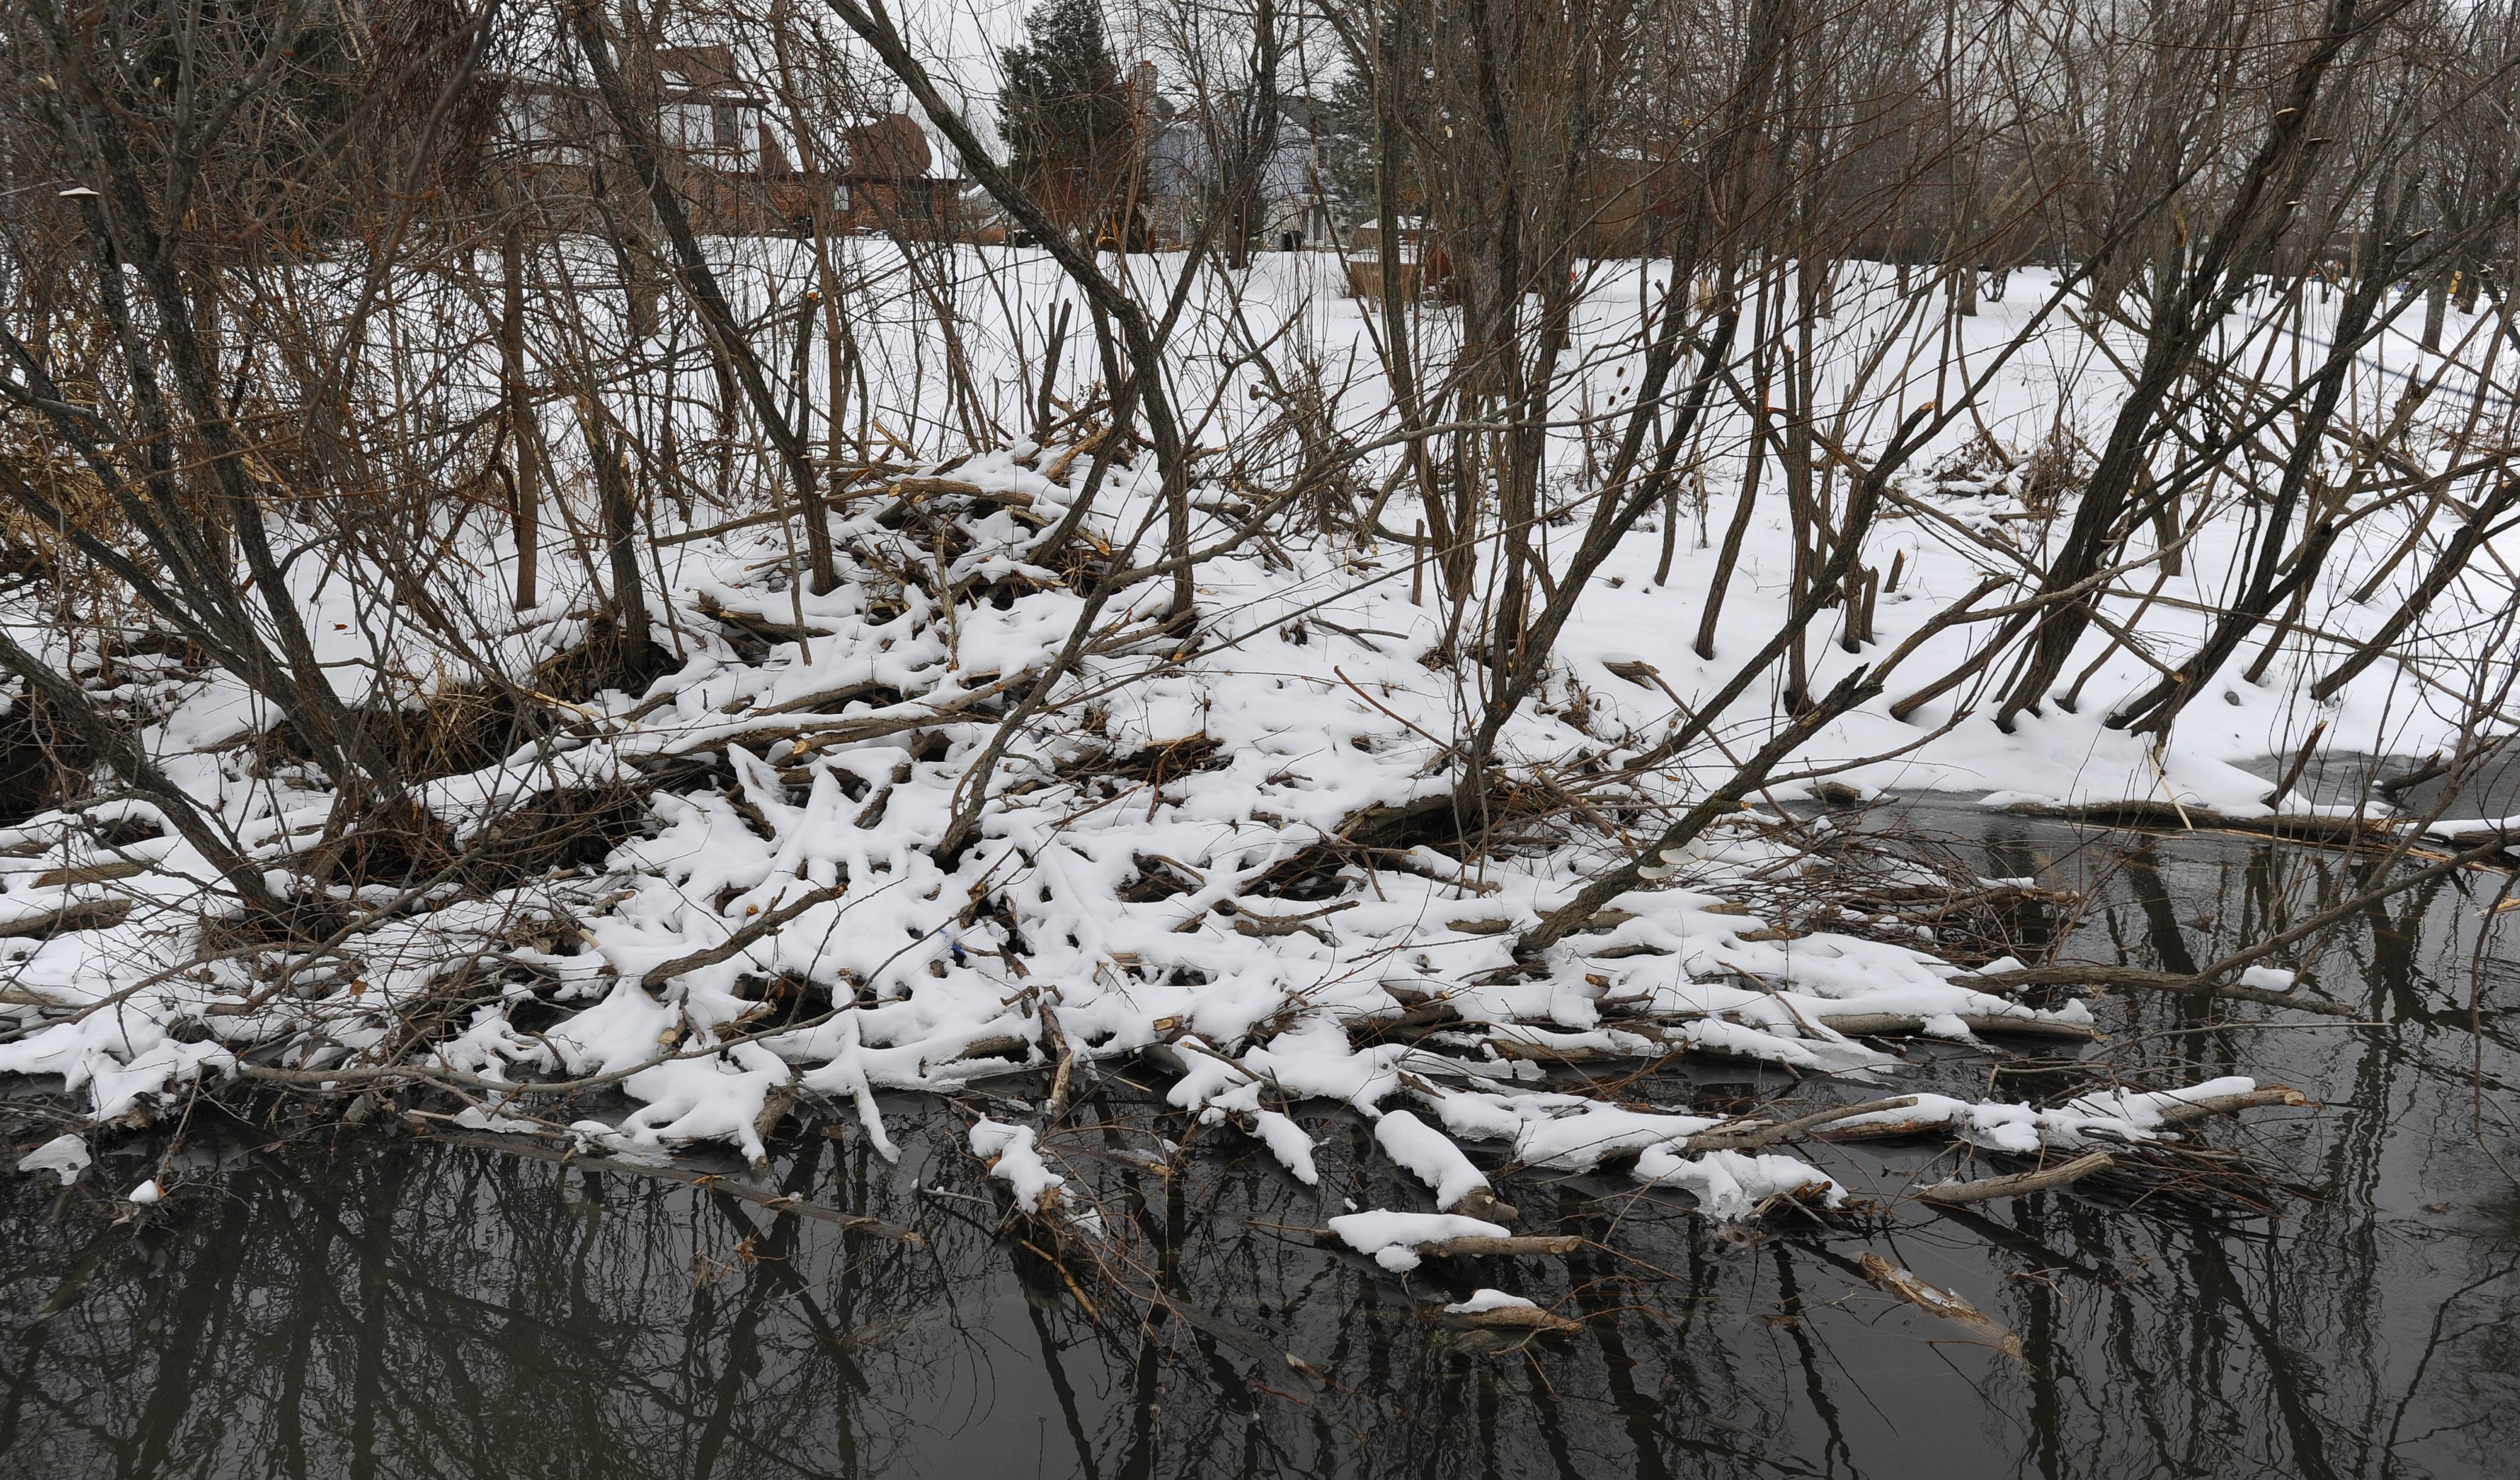 Prospect Heights plans to remove beavers that have destroyed trees and built a dam in a creek near Palatine and Schoenbeck roads because of flooding concerns.